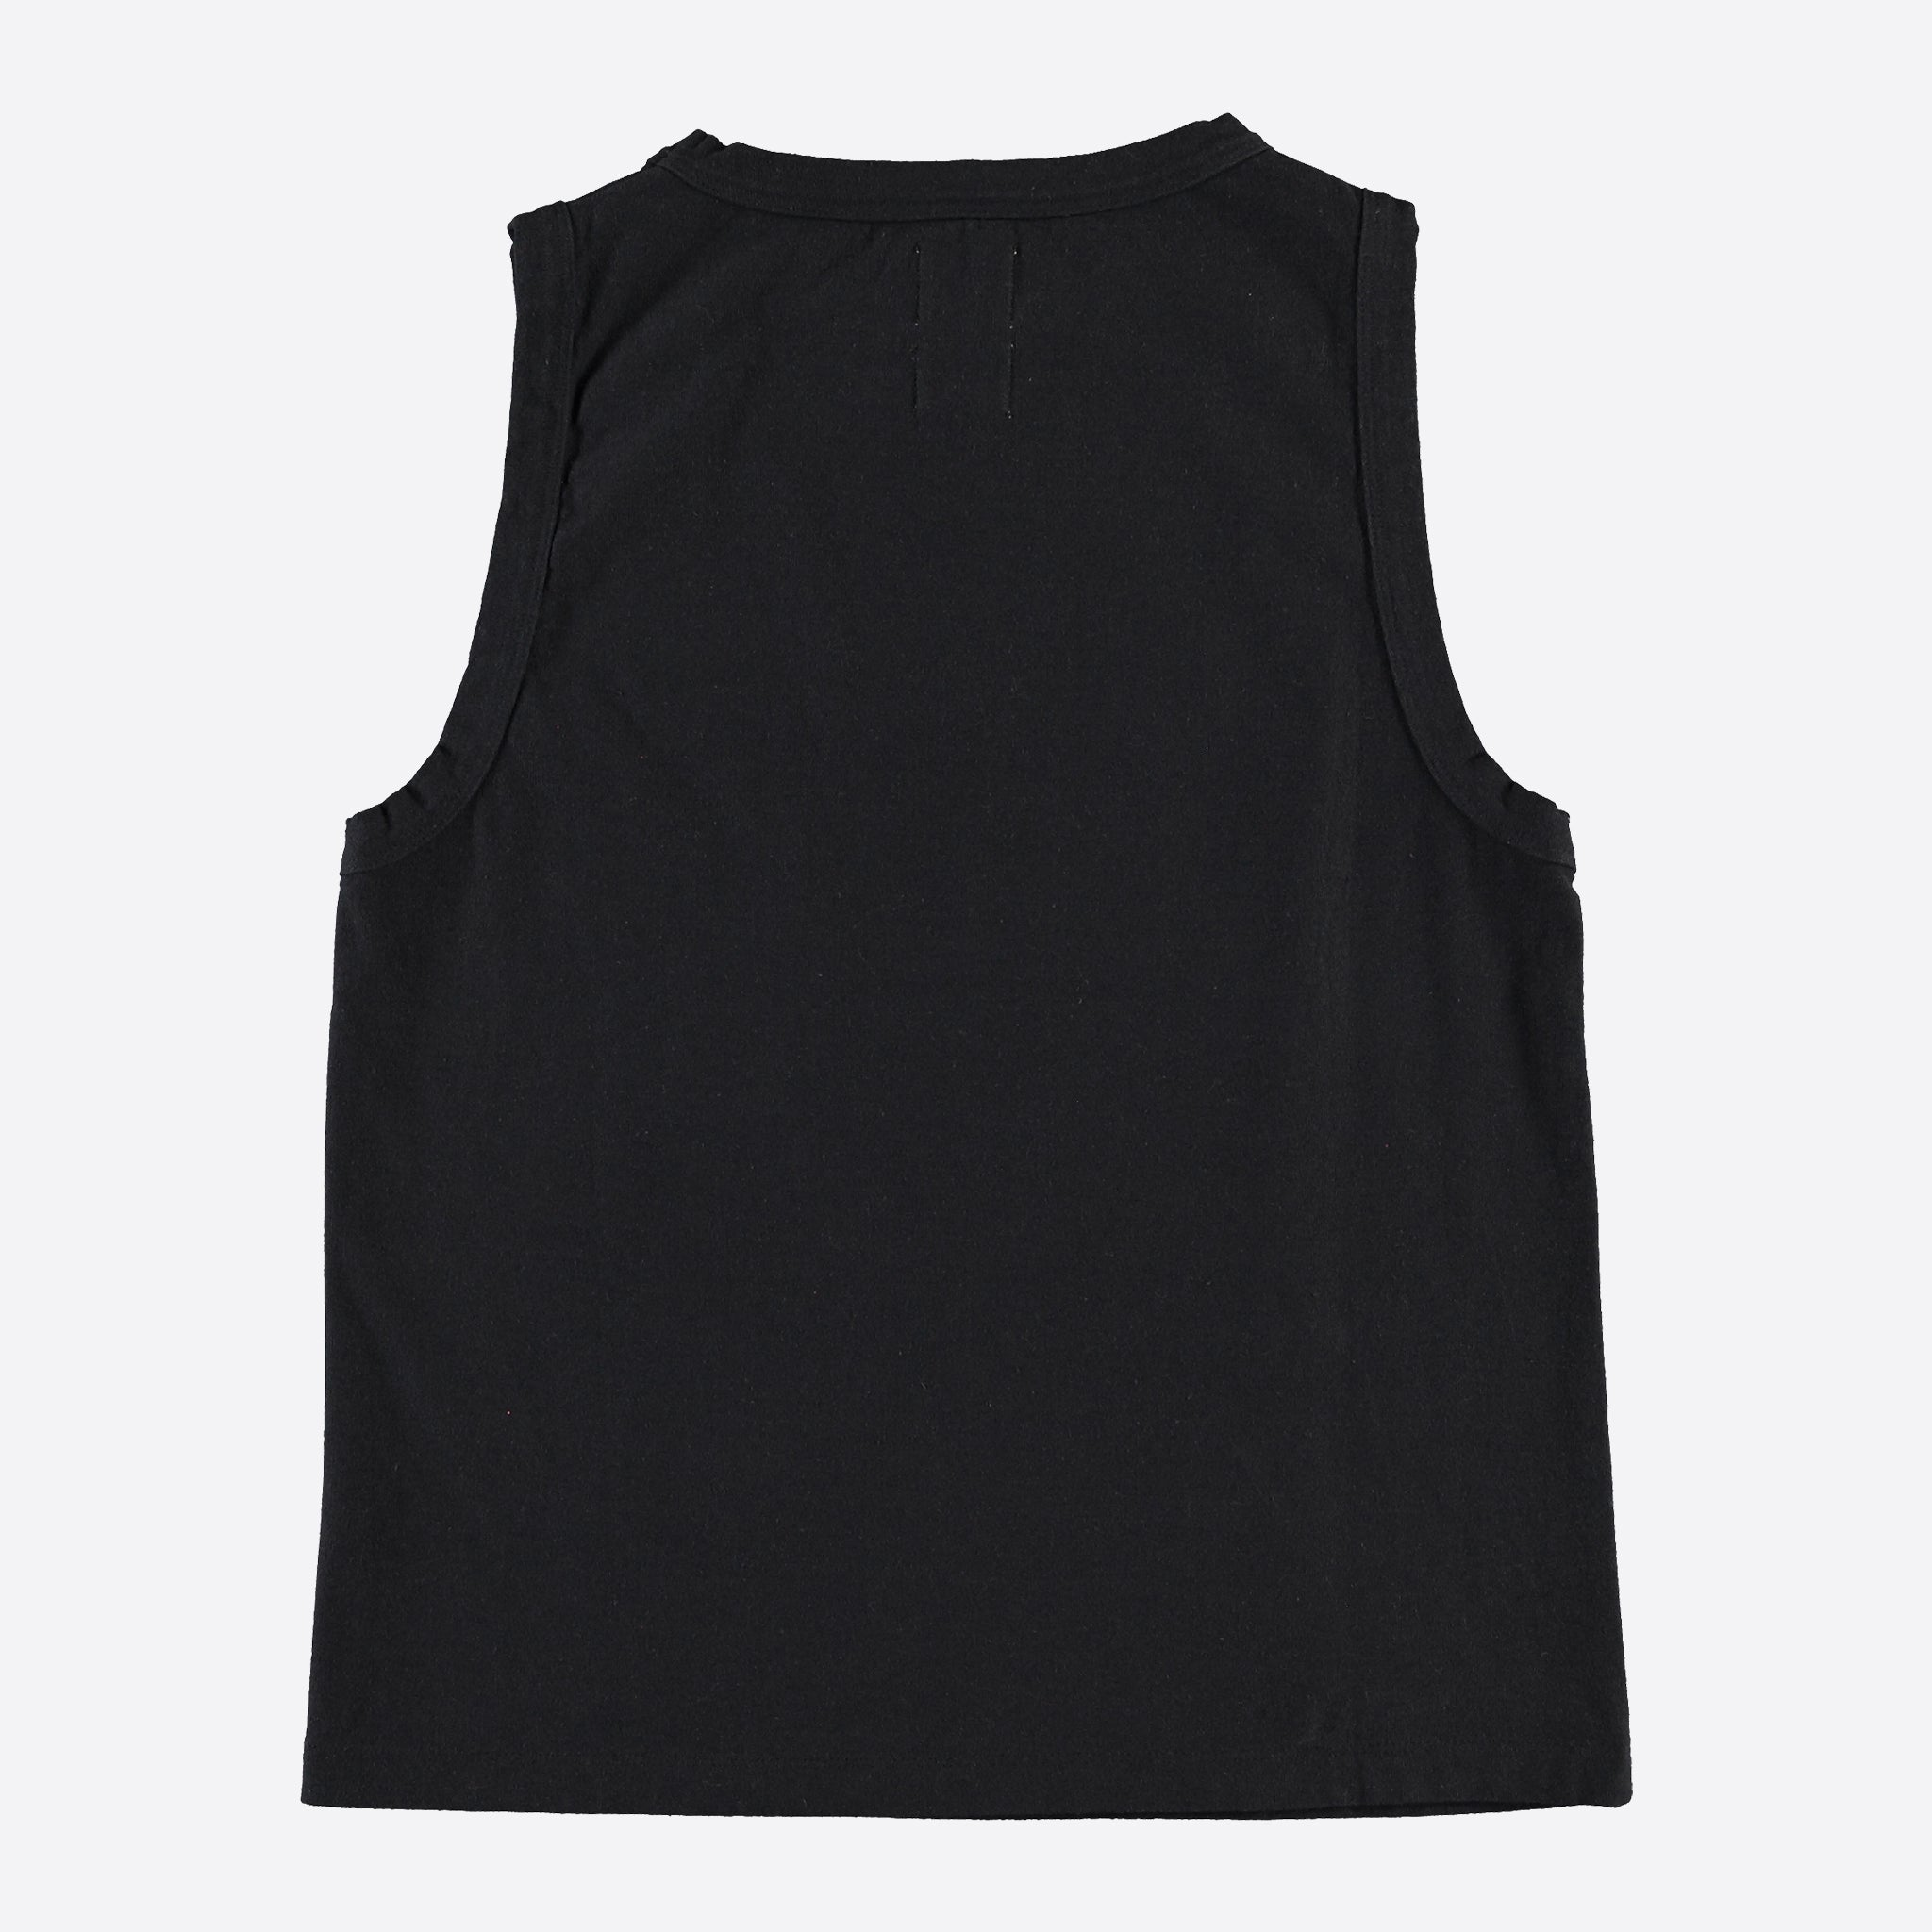 Girls of Dust Johnny Top in Black